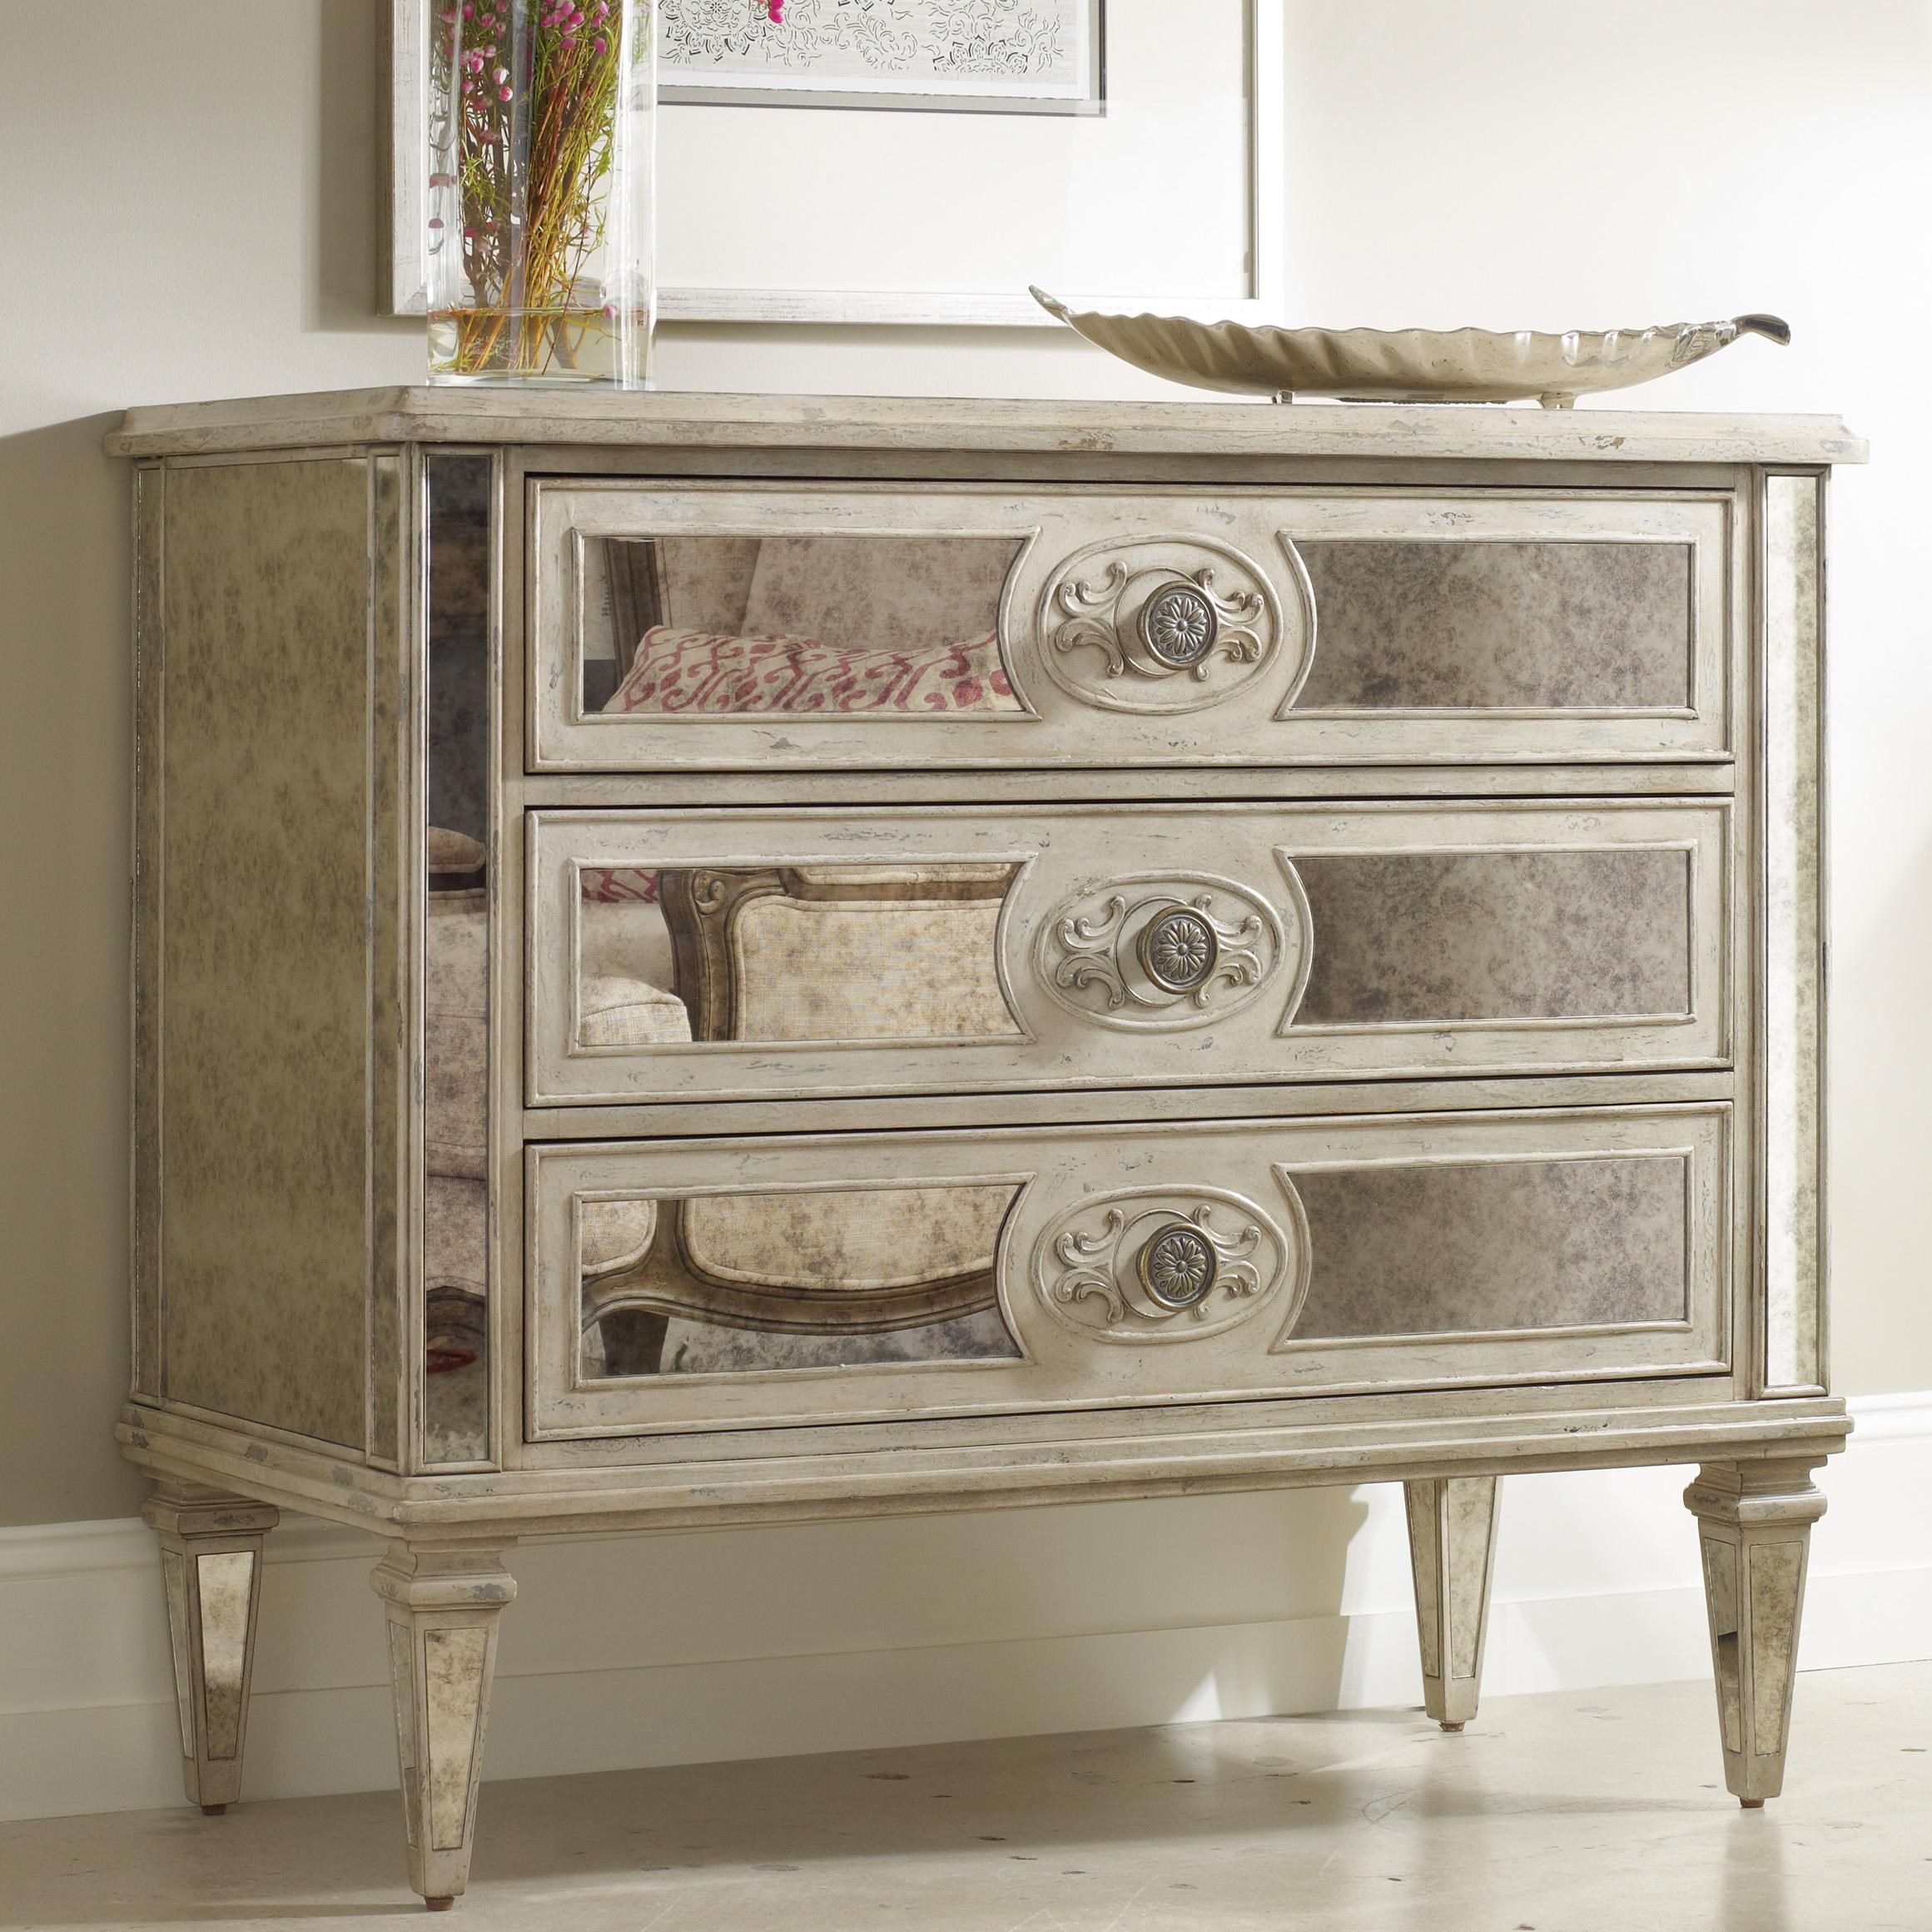 Hamilton Home Living Room Accents 3 Drawer Antique Mirrored Chest